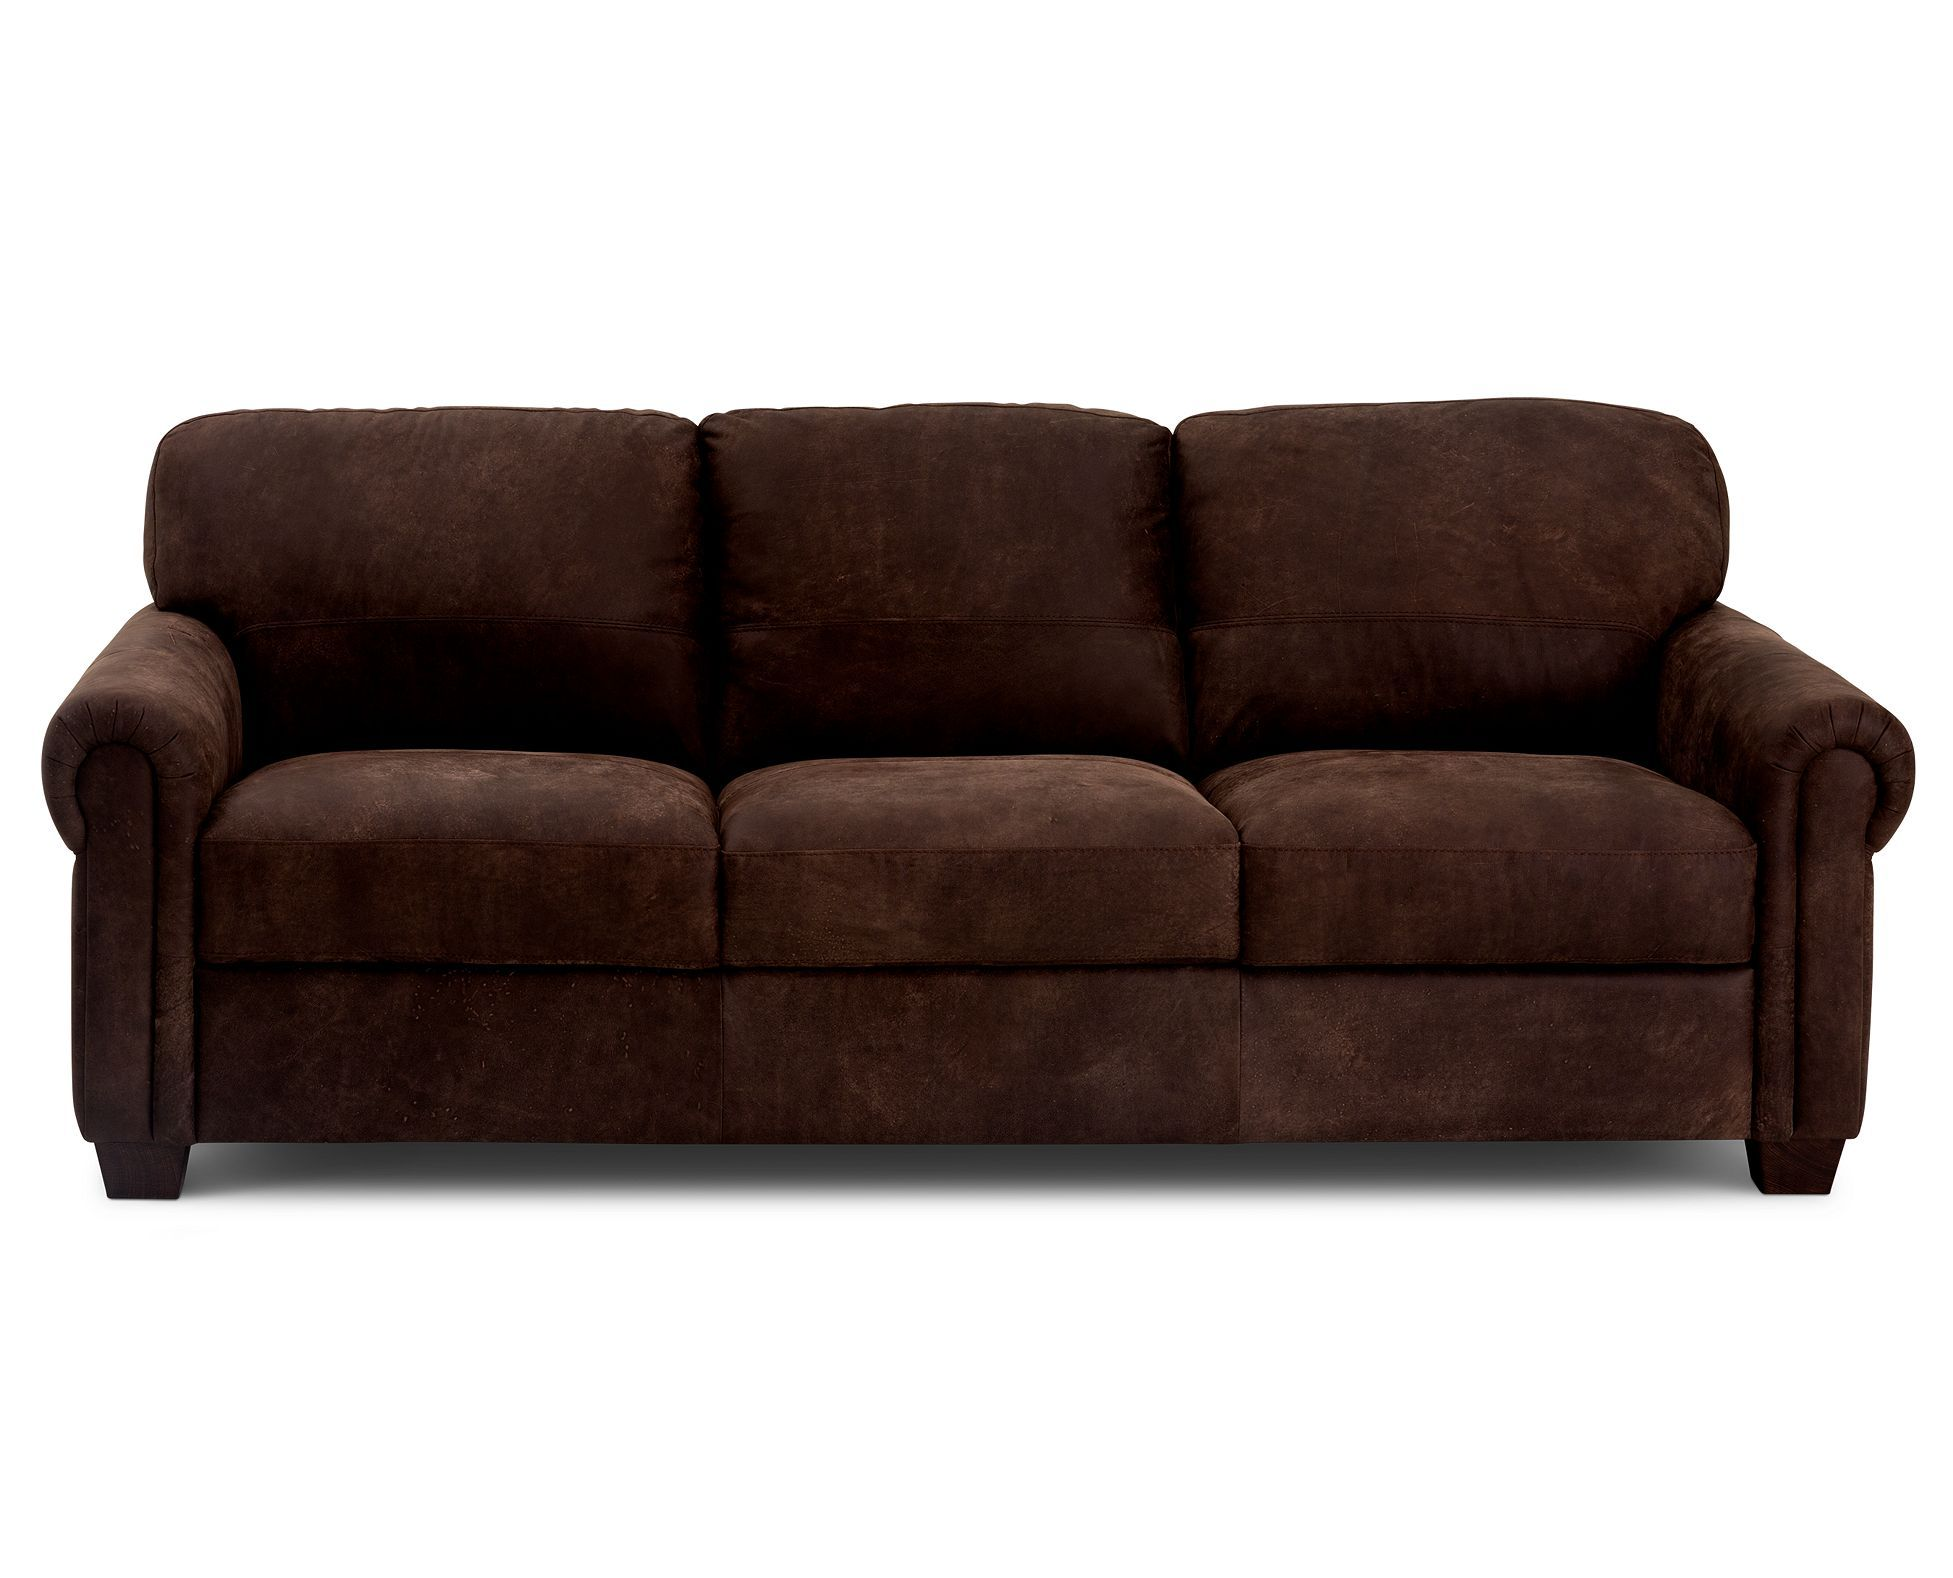 Get Clearance Pricing On The Gabbiano Sofa In Italian Leather For